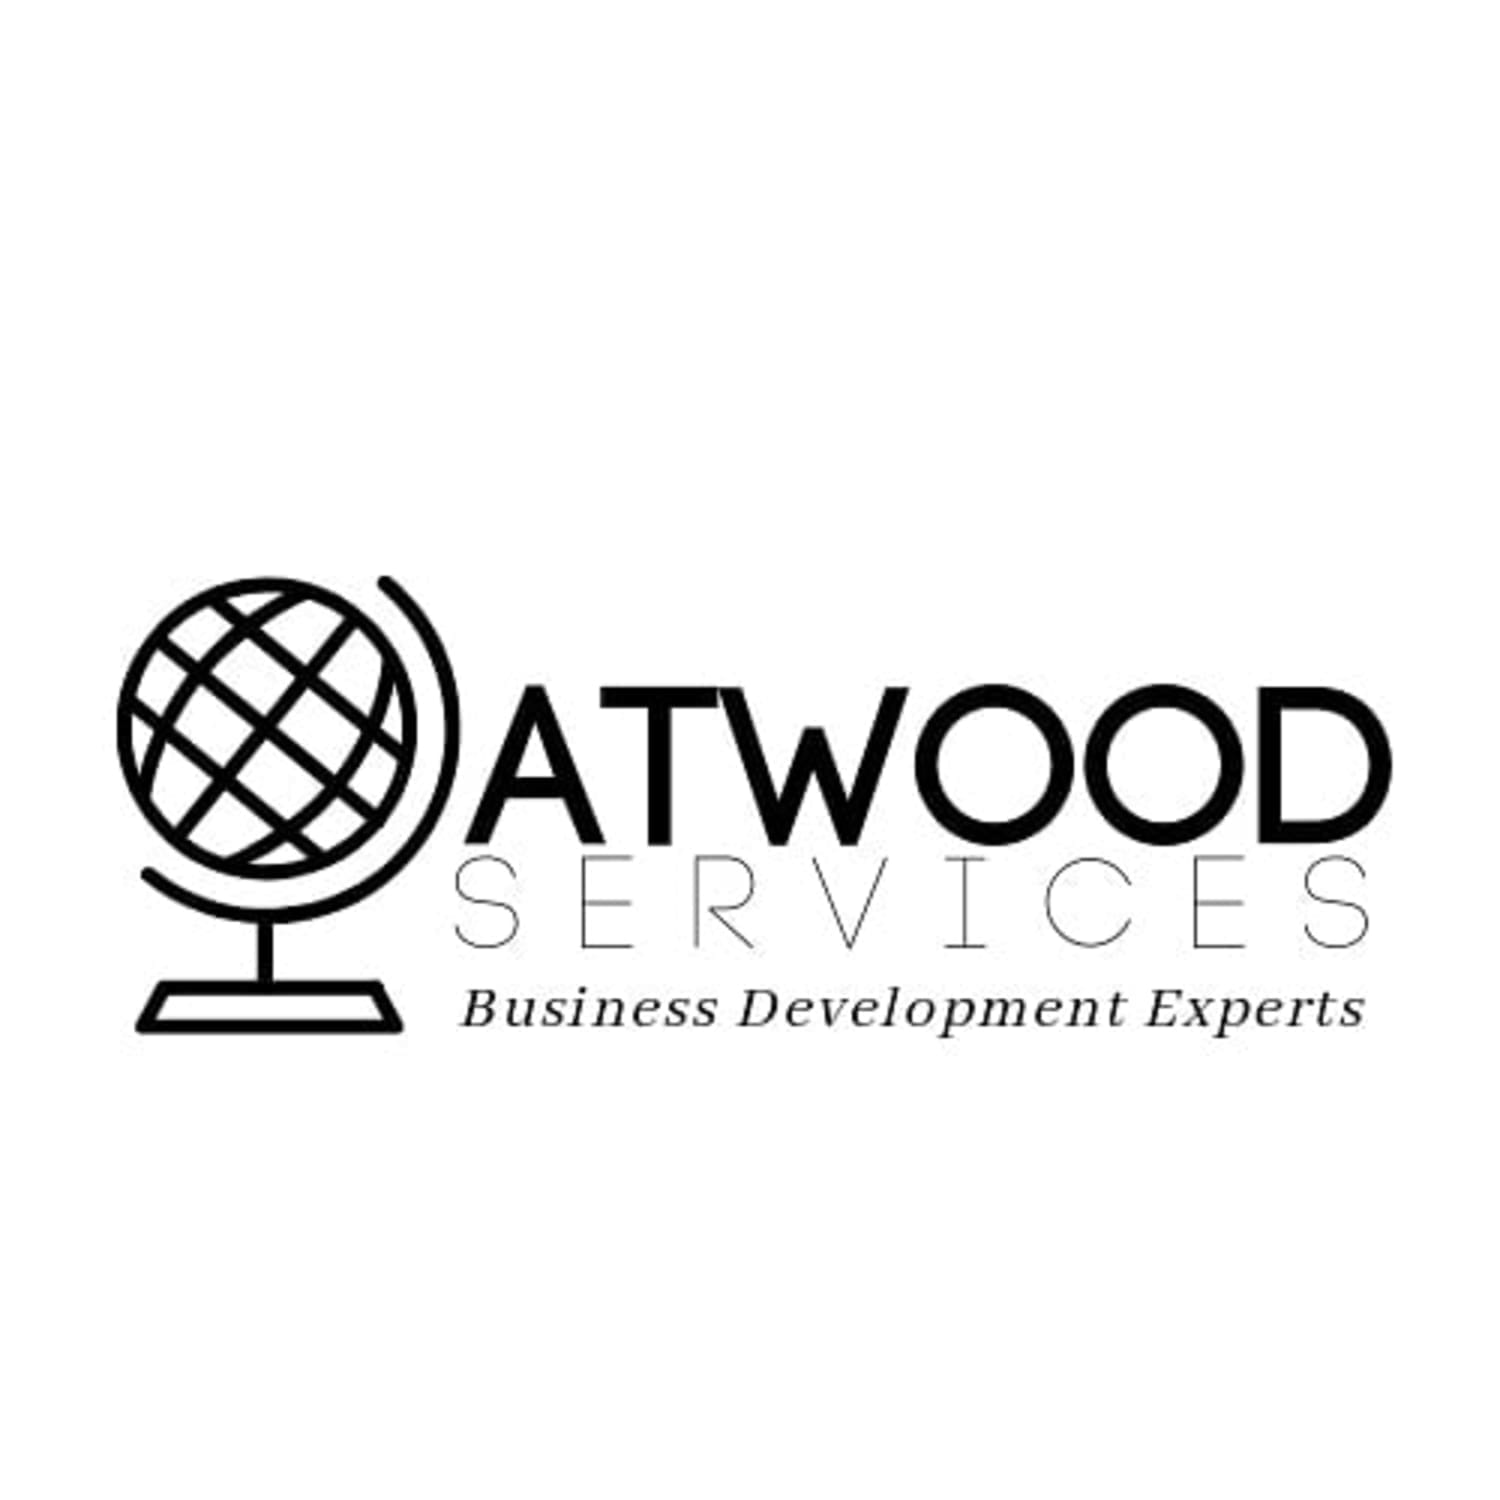 Atwood Services